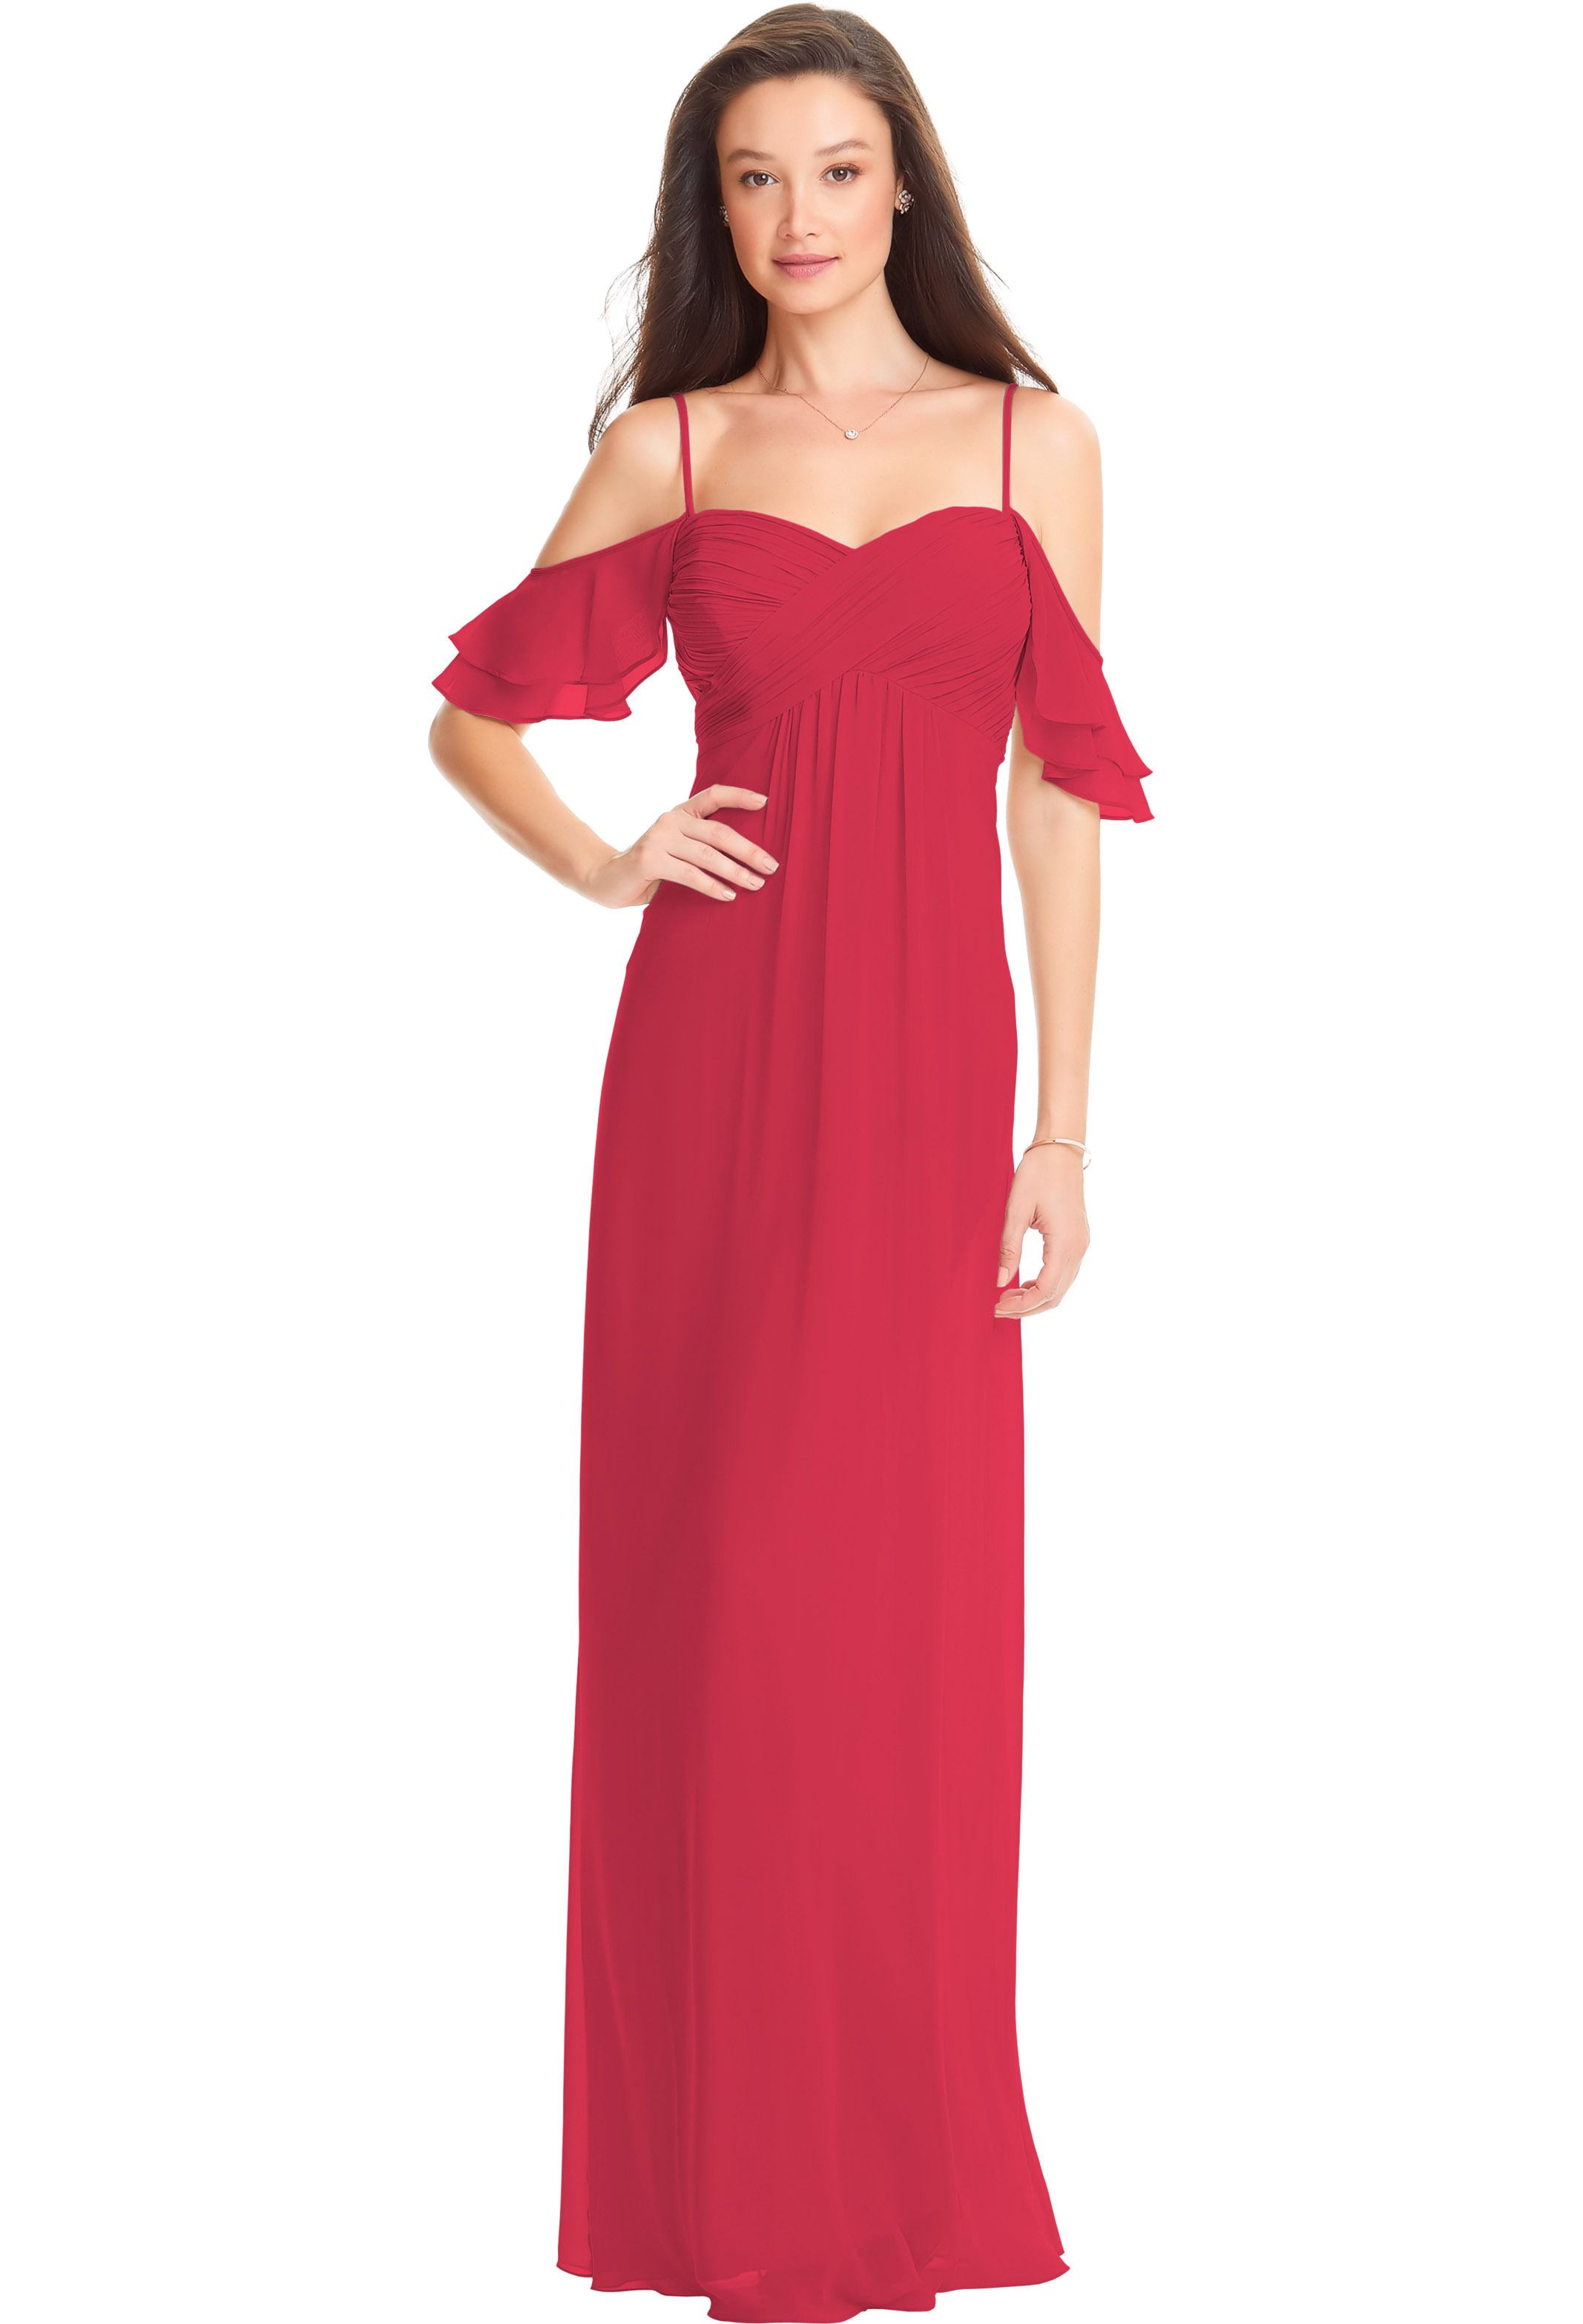 Bill Levkoff CRANBERRY Chiffon Off The Shoulder A-line gown, $178.00 Front